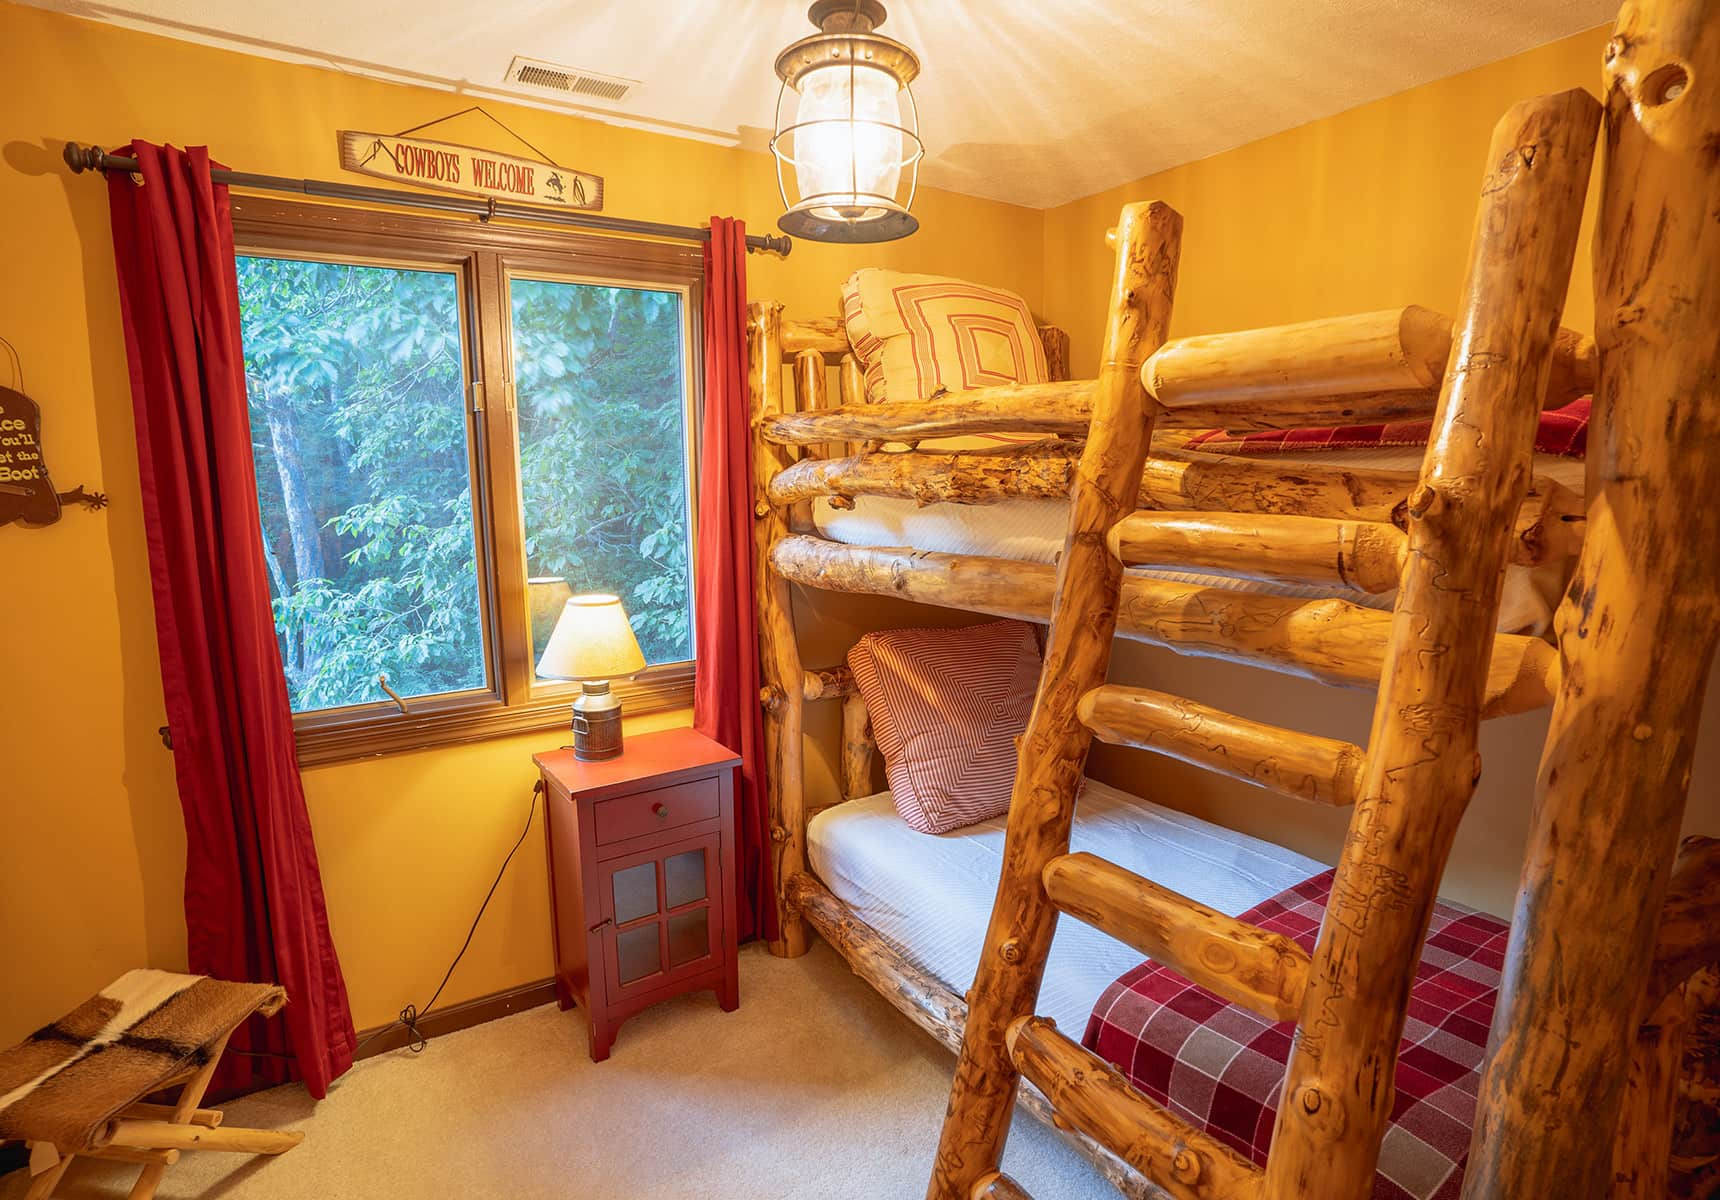 Creekside Home bunks - Cabin that Sleeps 6 in WV